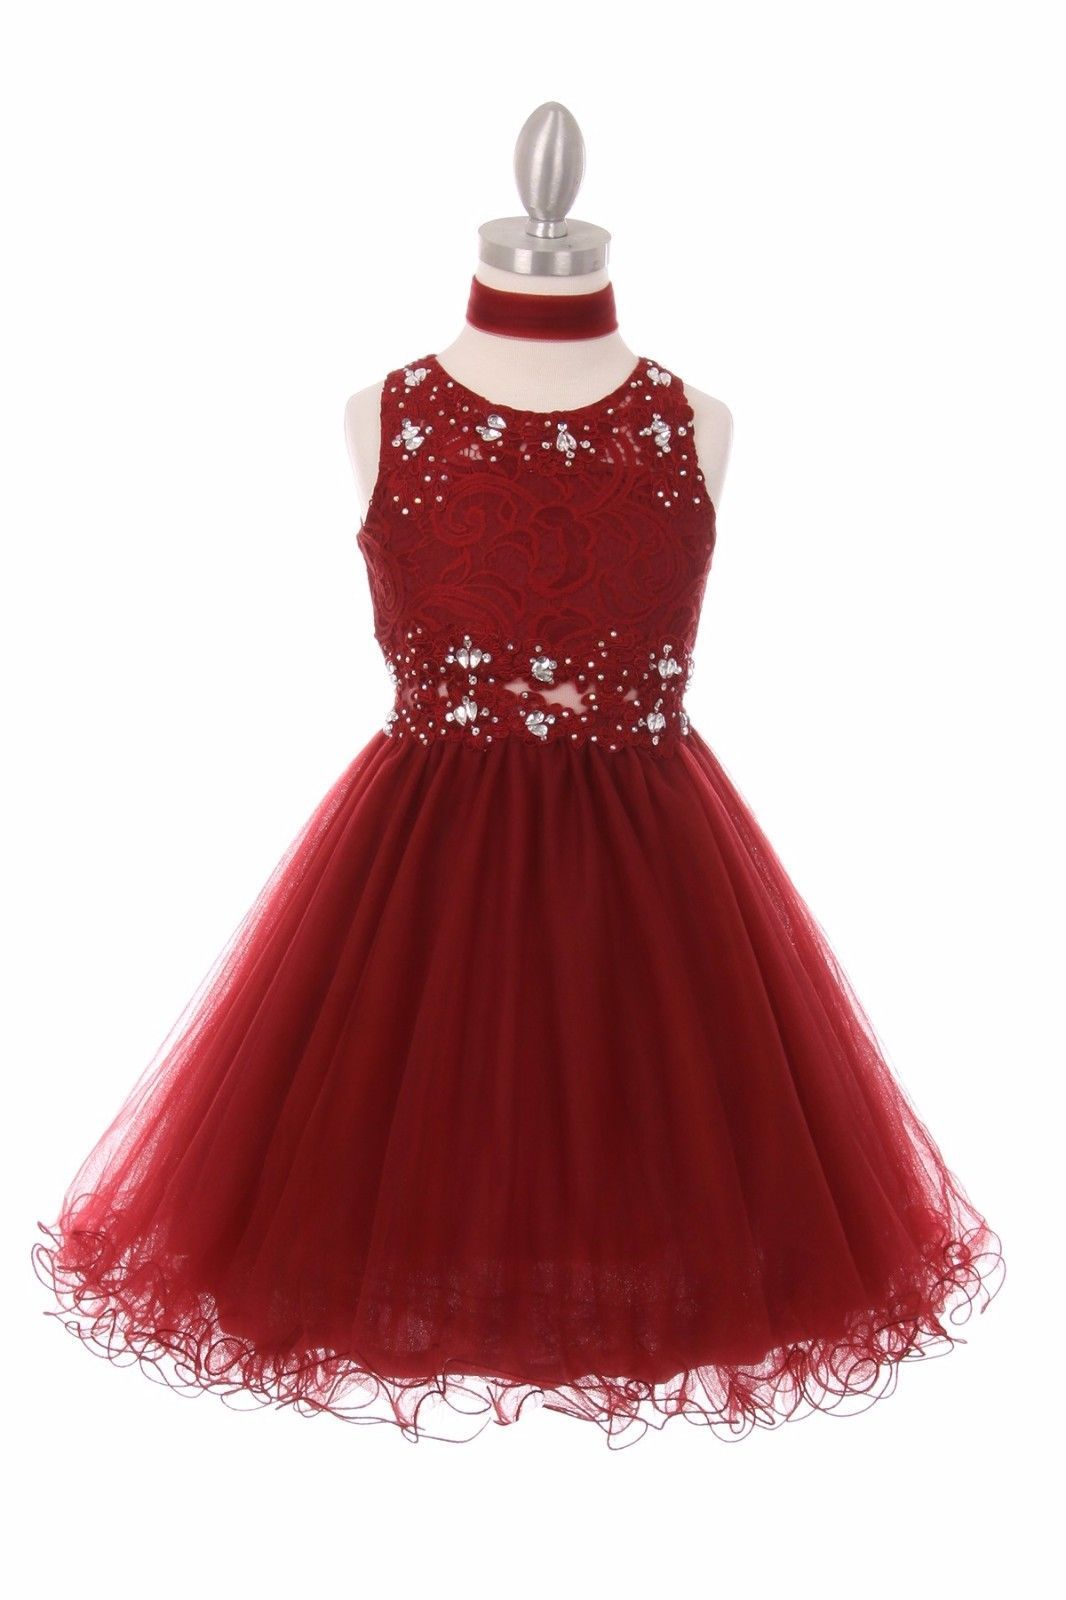 Girls formal occasion new burgundy lace tulle girls dress